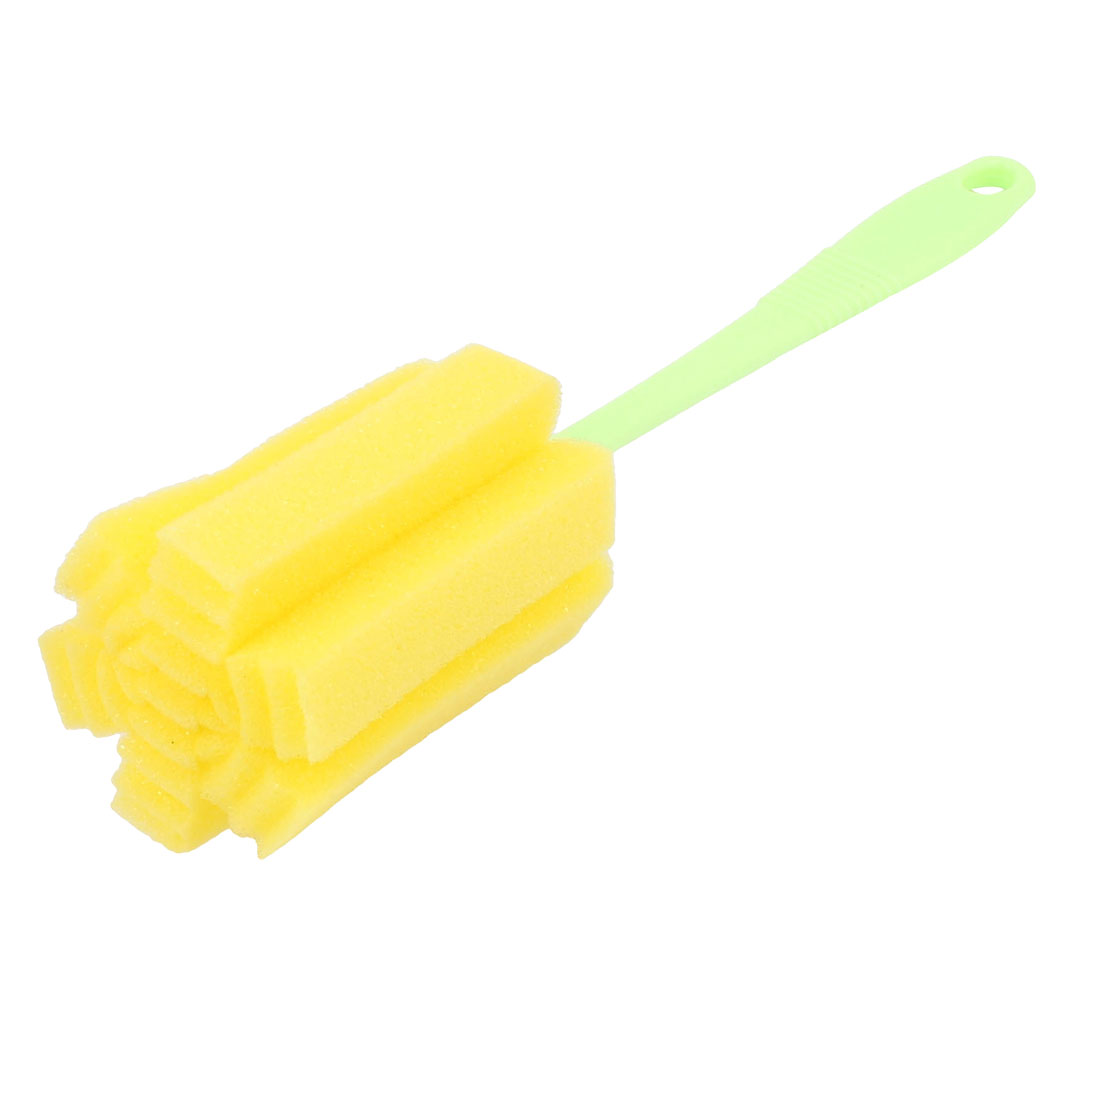 Yellow Green Plastic Grip Cylinder Sponge Milk Bottle Tube Cup Cleaning Washing Brush 24.5cm Length